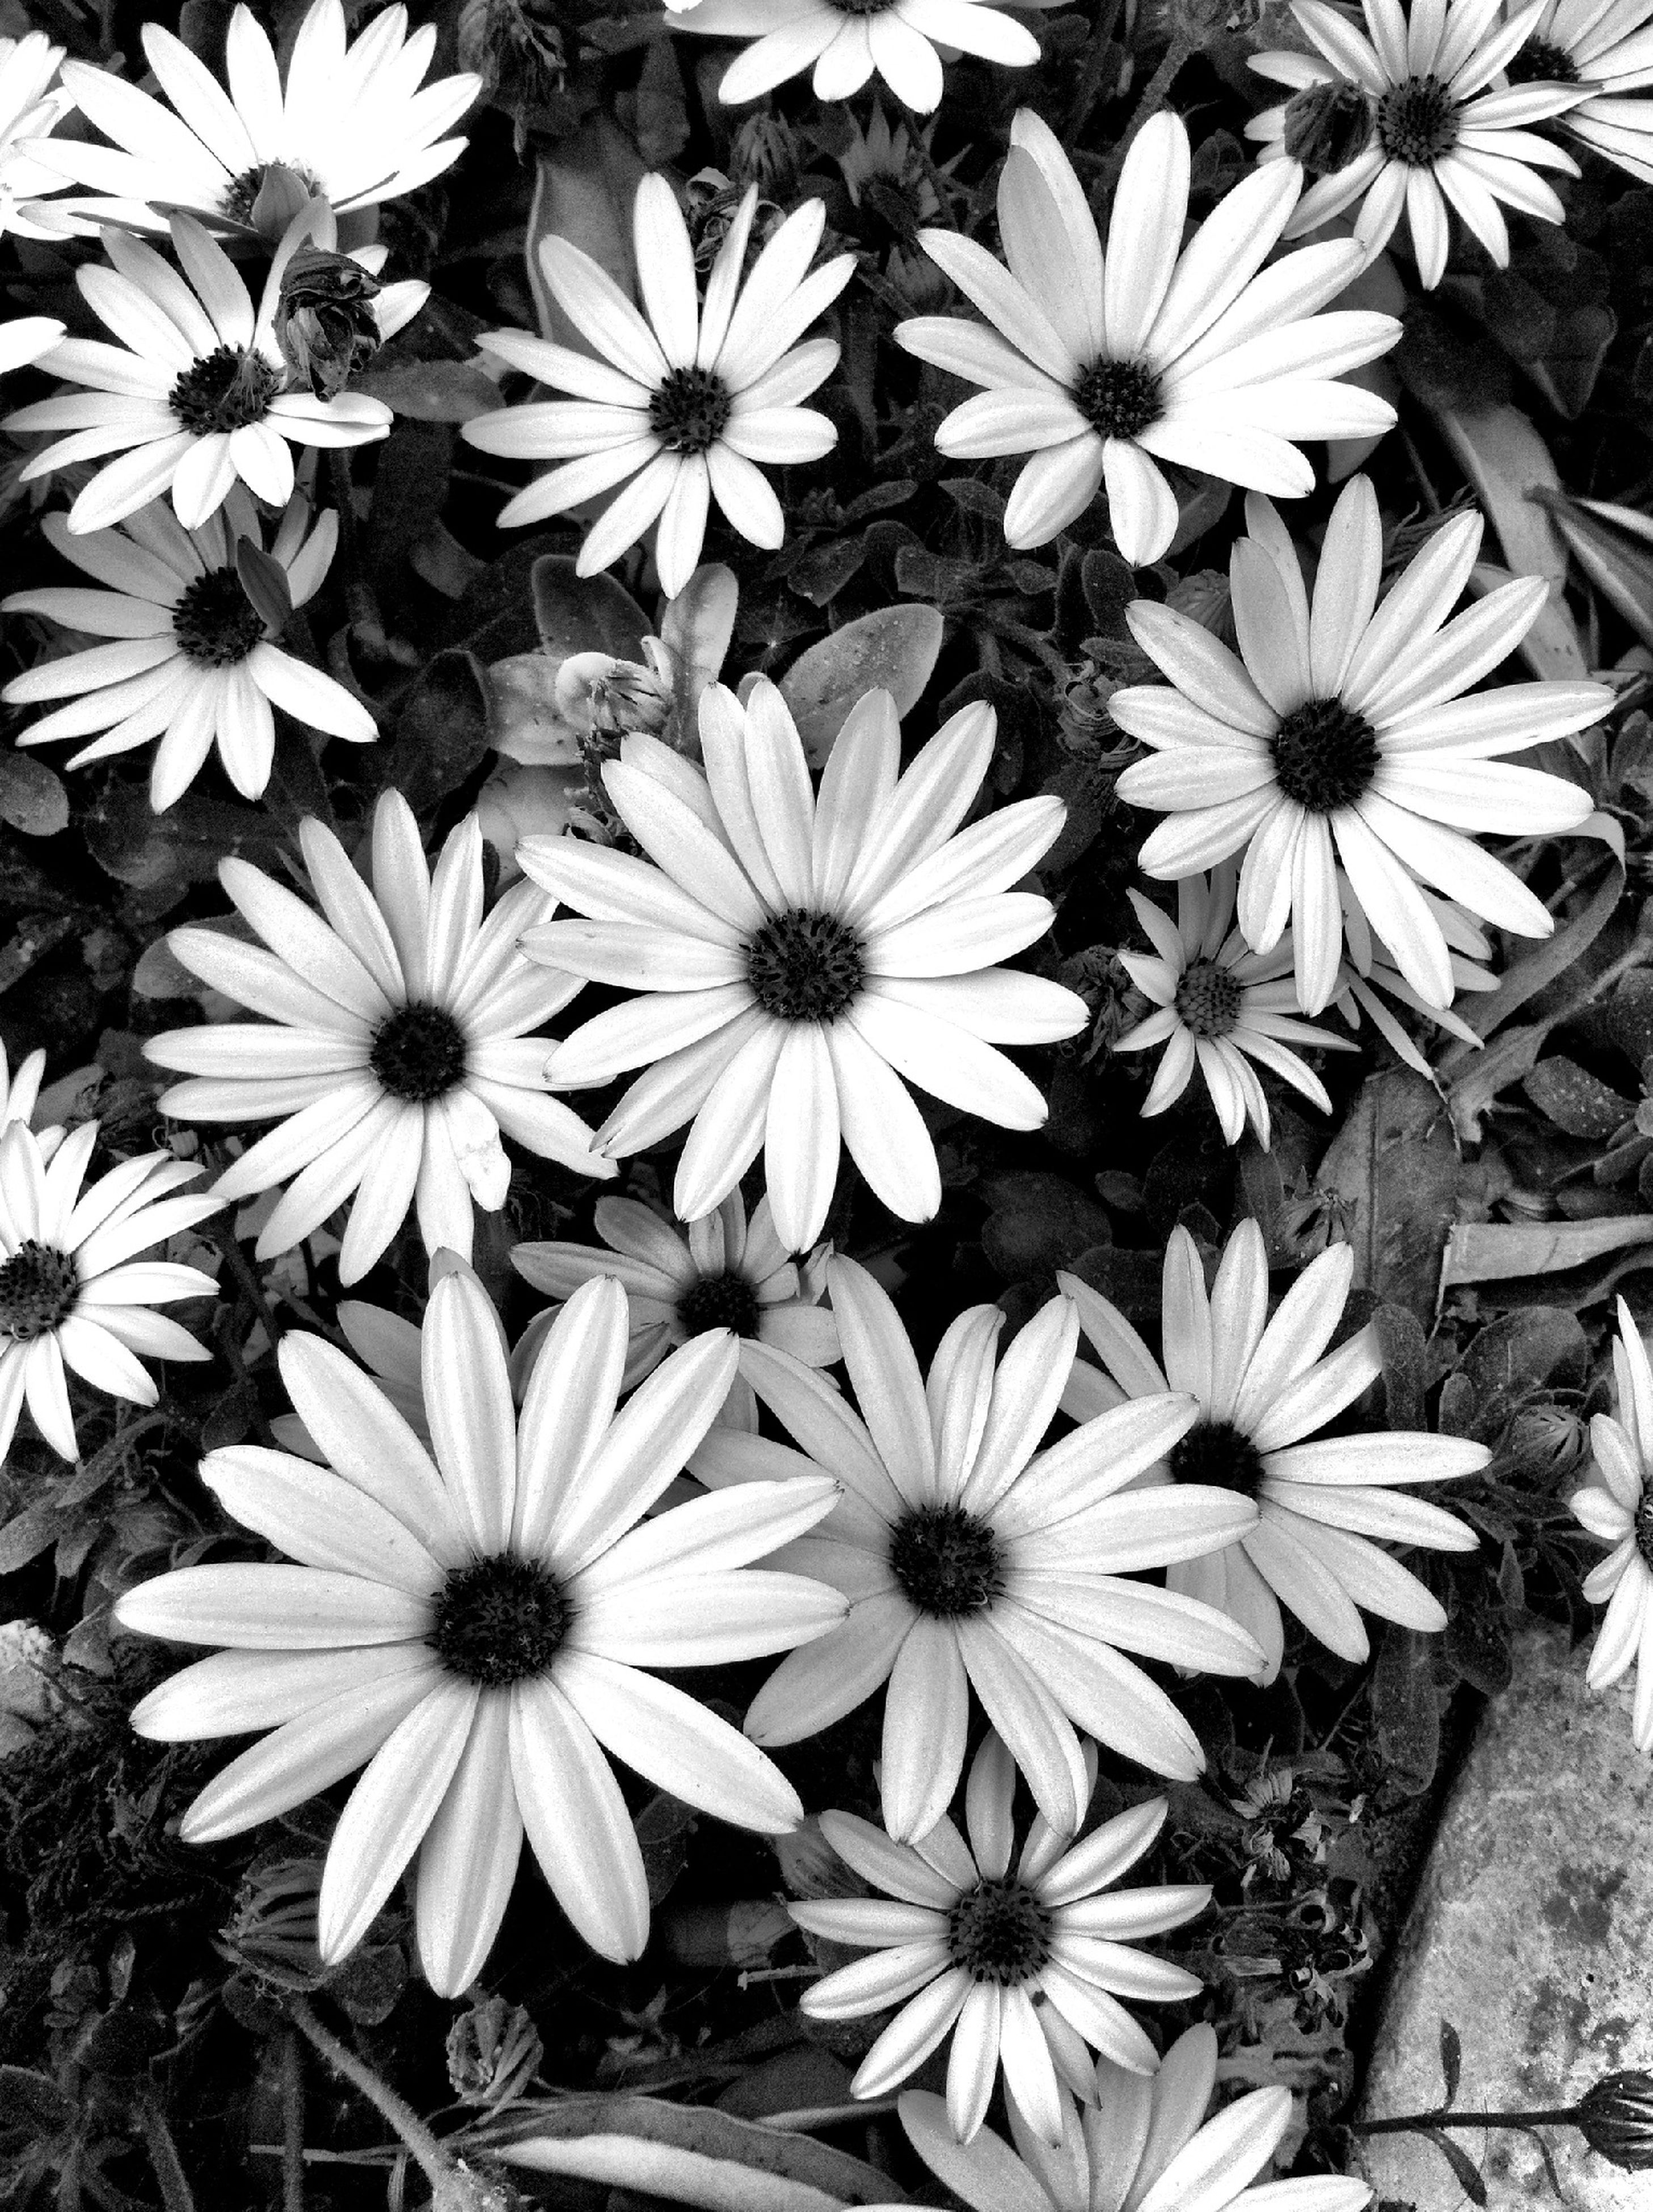 flower, freshness, petal, fragility, growth, flower head, plant, beauty in nature, high angle view, blooming, nature, white color, field, in bloom, close-up, day, outdoors, no people, pollen, daisy